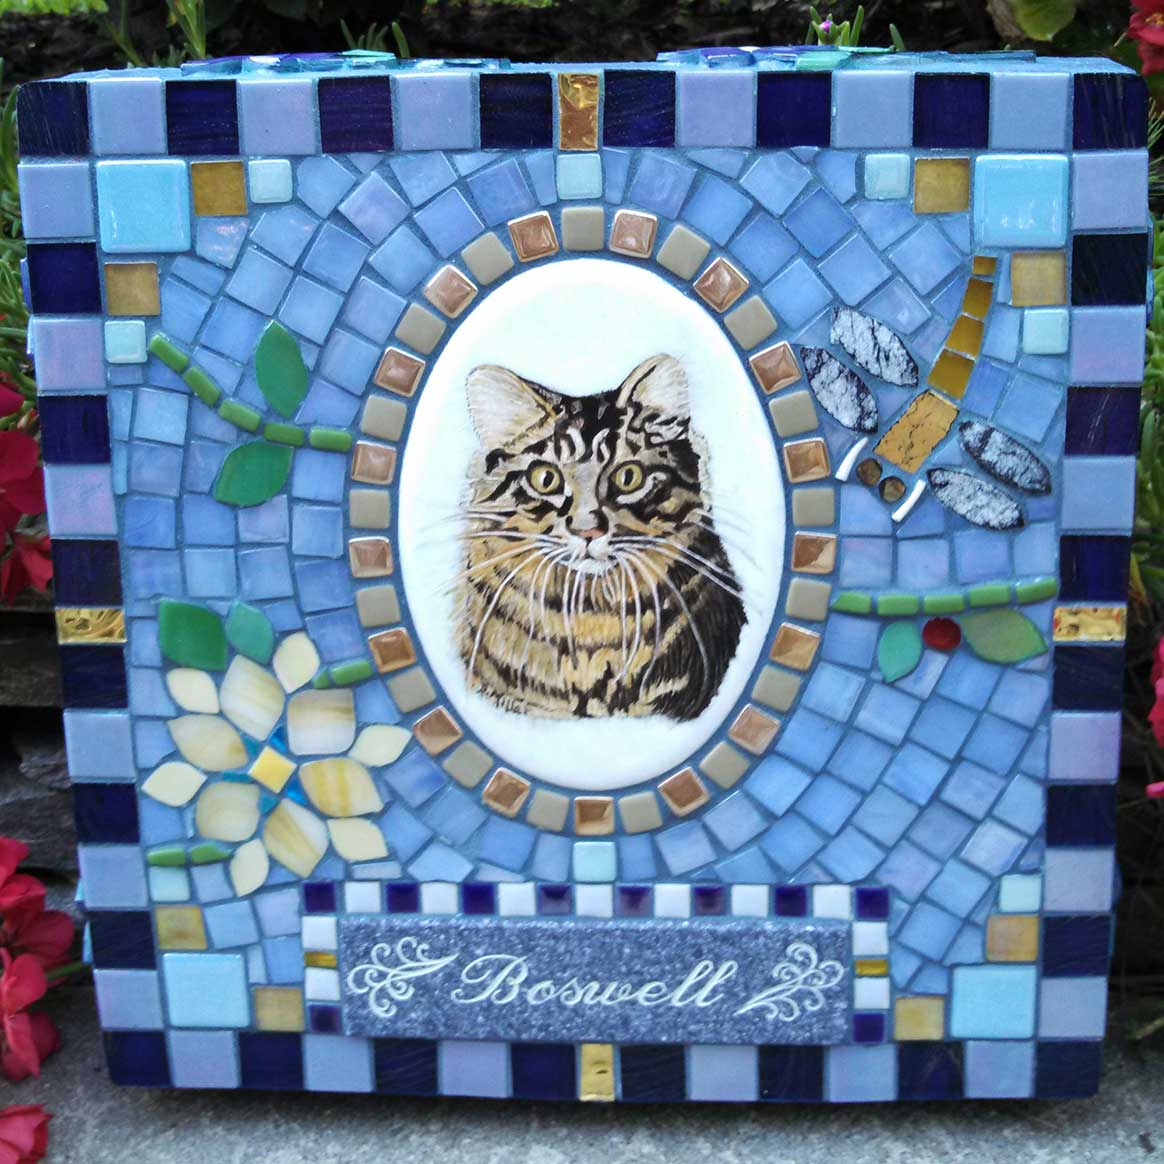 Mosaic Pet Portrait Memorial Stone of Cat Boswell's Dragonfly by Water's End Studio Artist Linda Solby